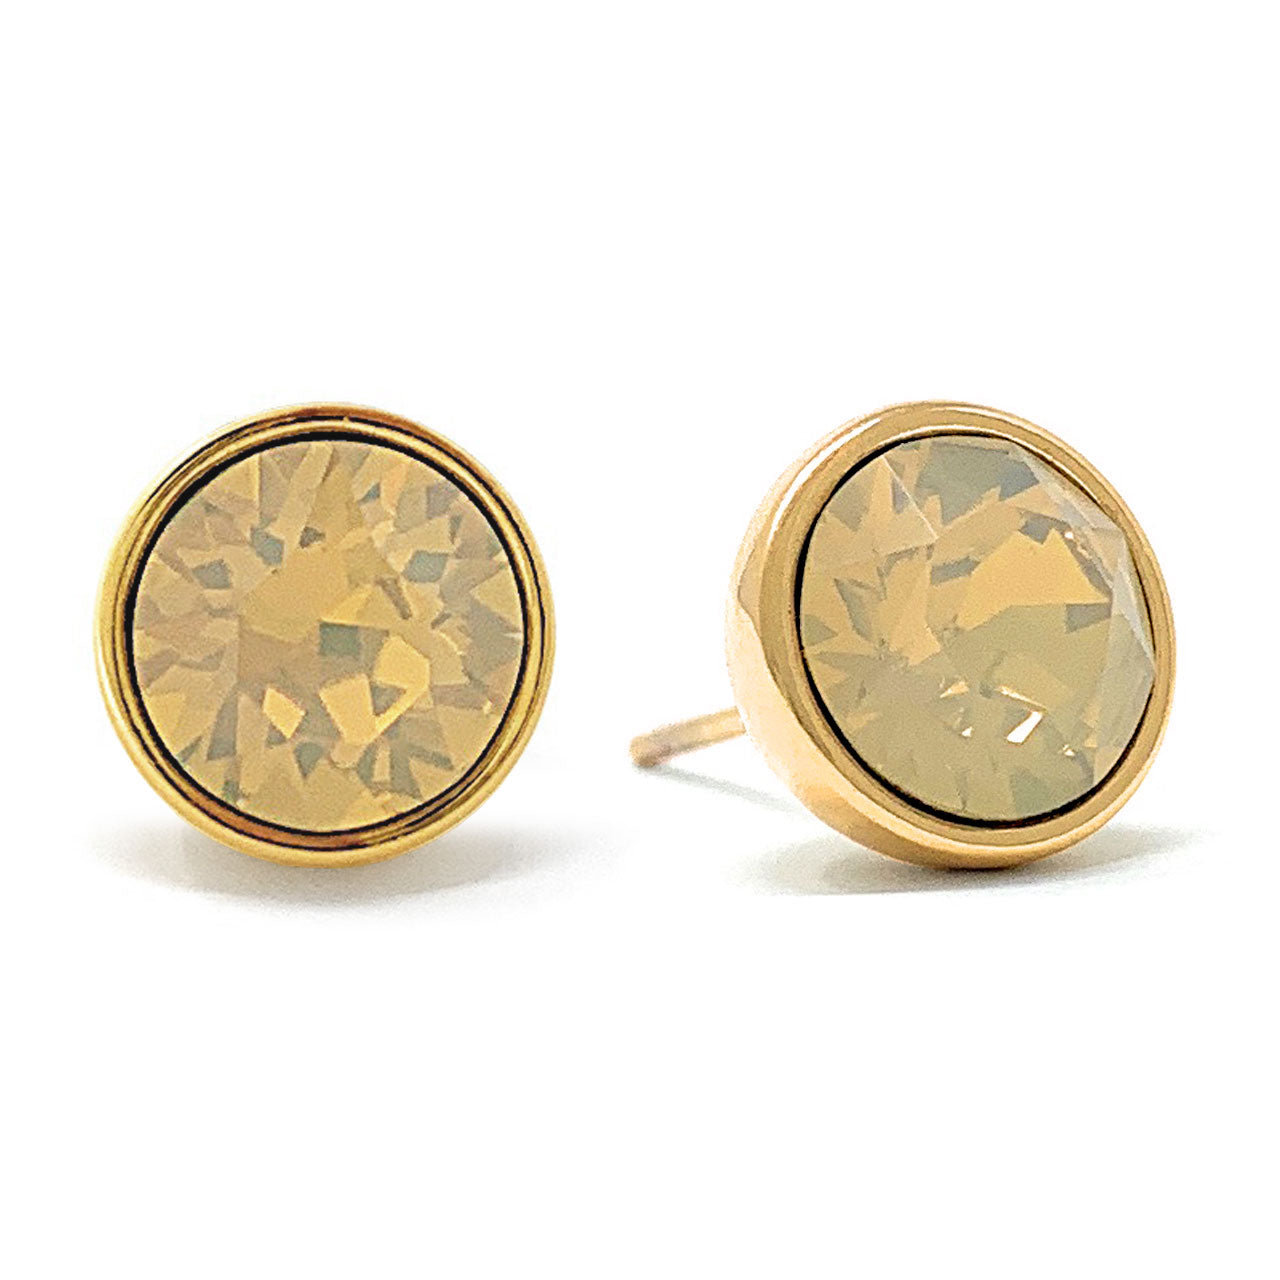 Harley Stud Earrings with Beige Sand Round Opals from Swarovski Gold Plated - Ed Heart